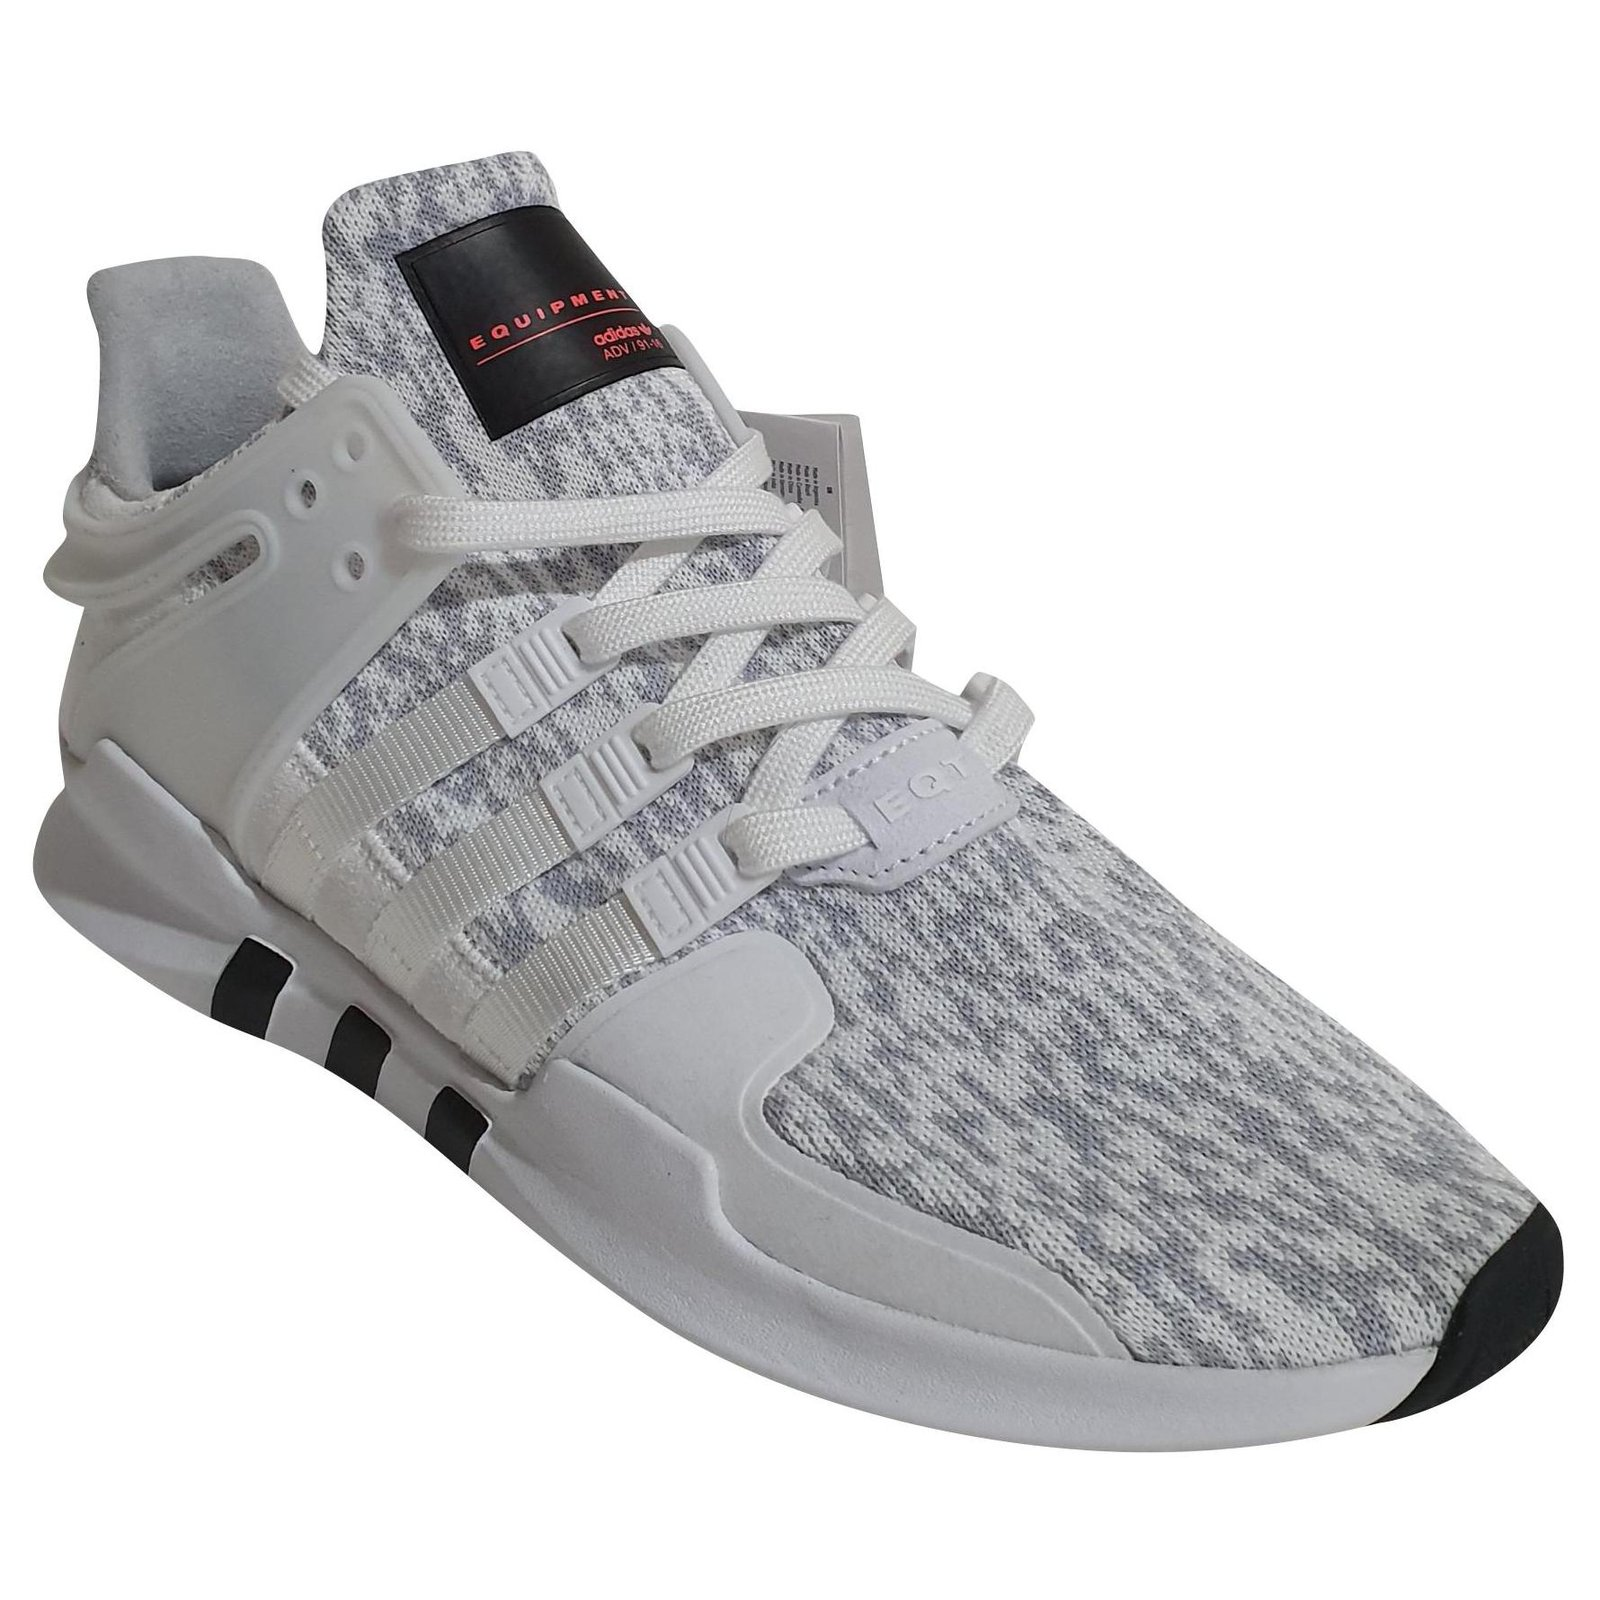 Adidas Sneakers Sneakers Other,Cloth